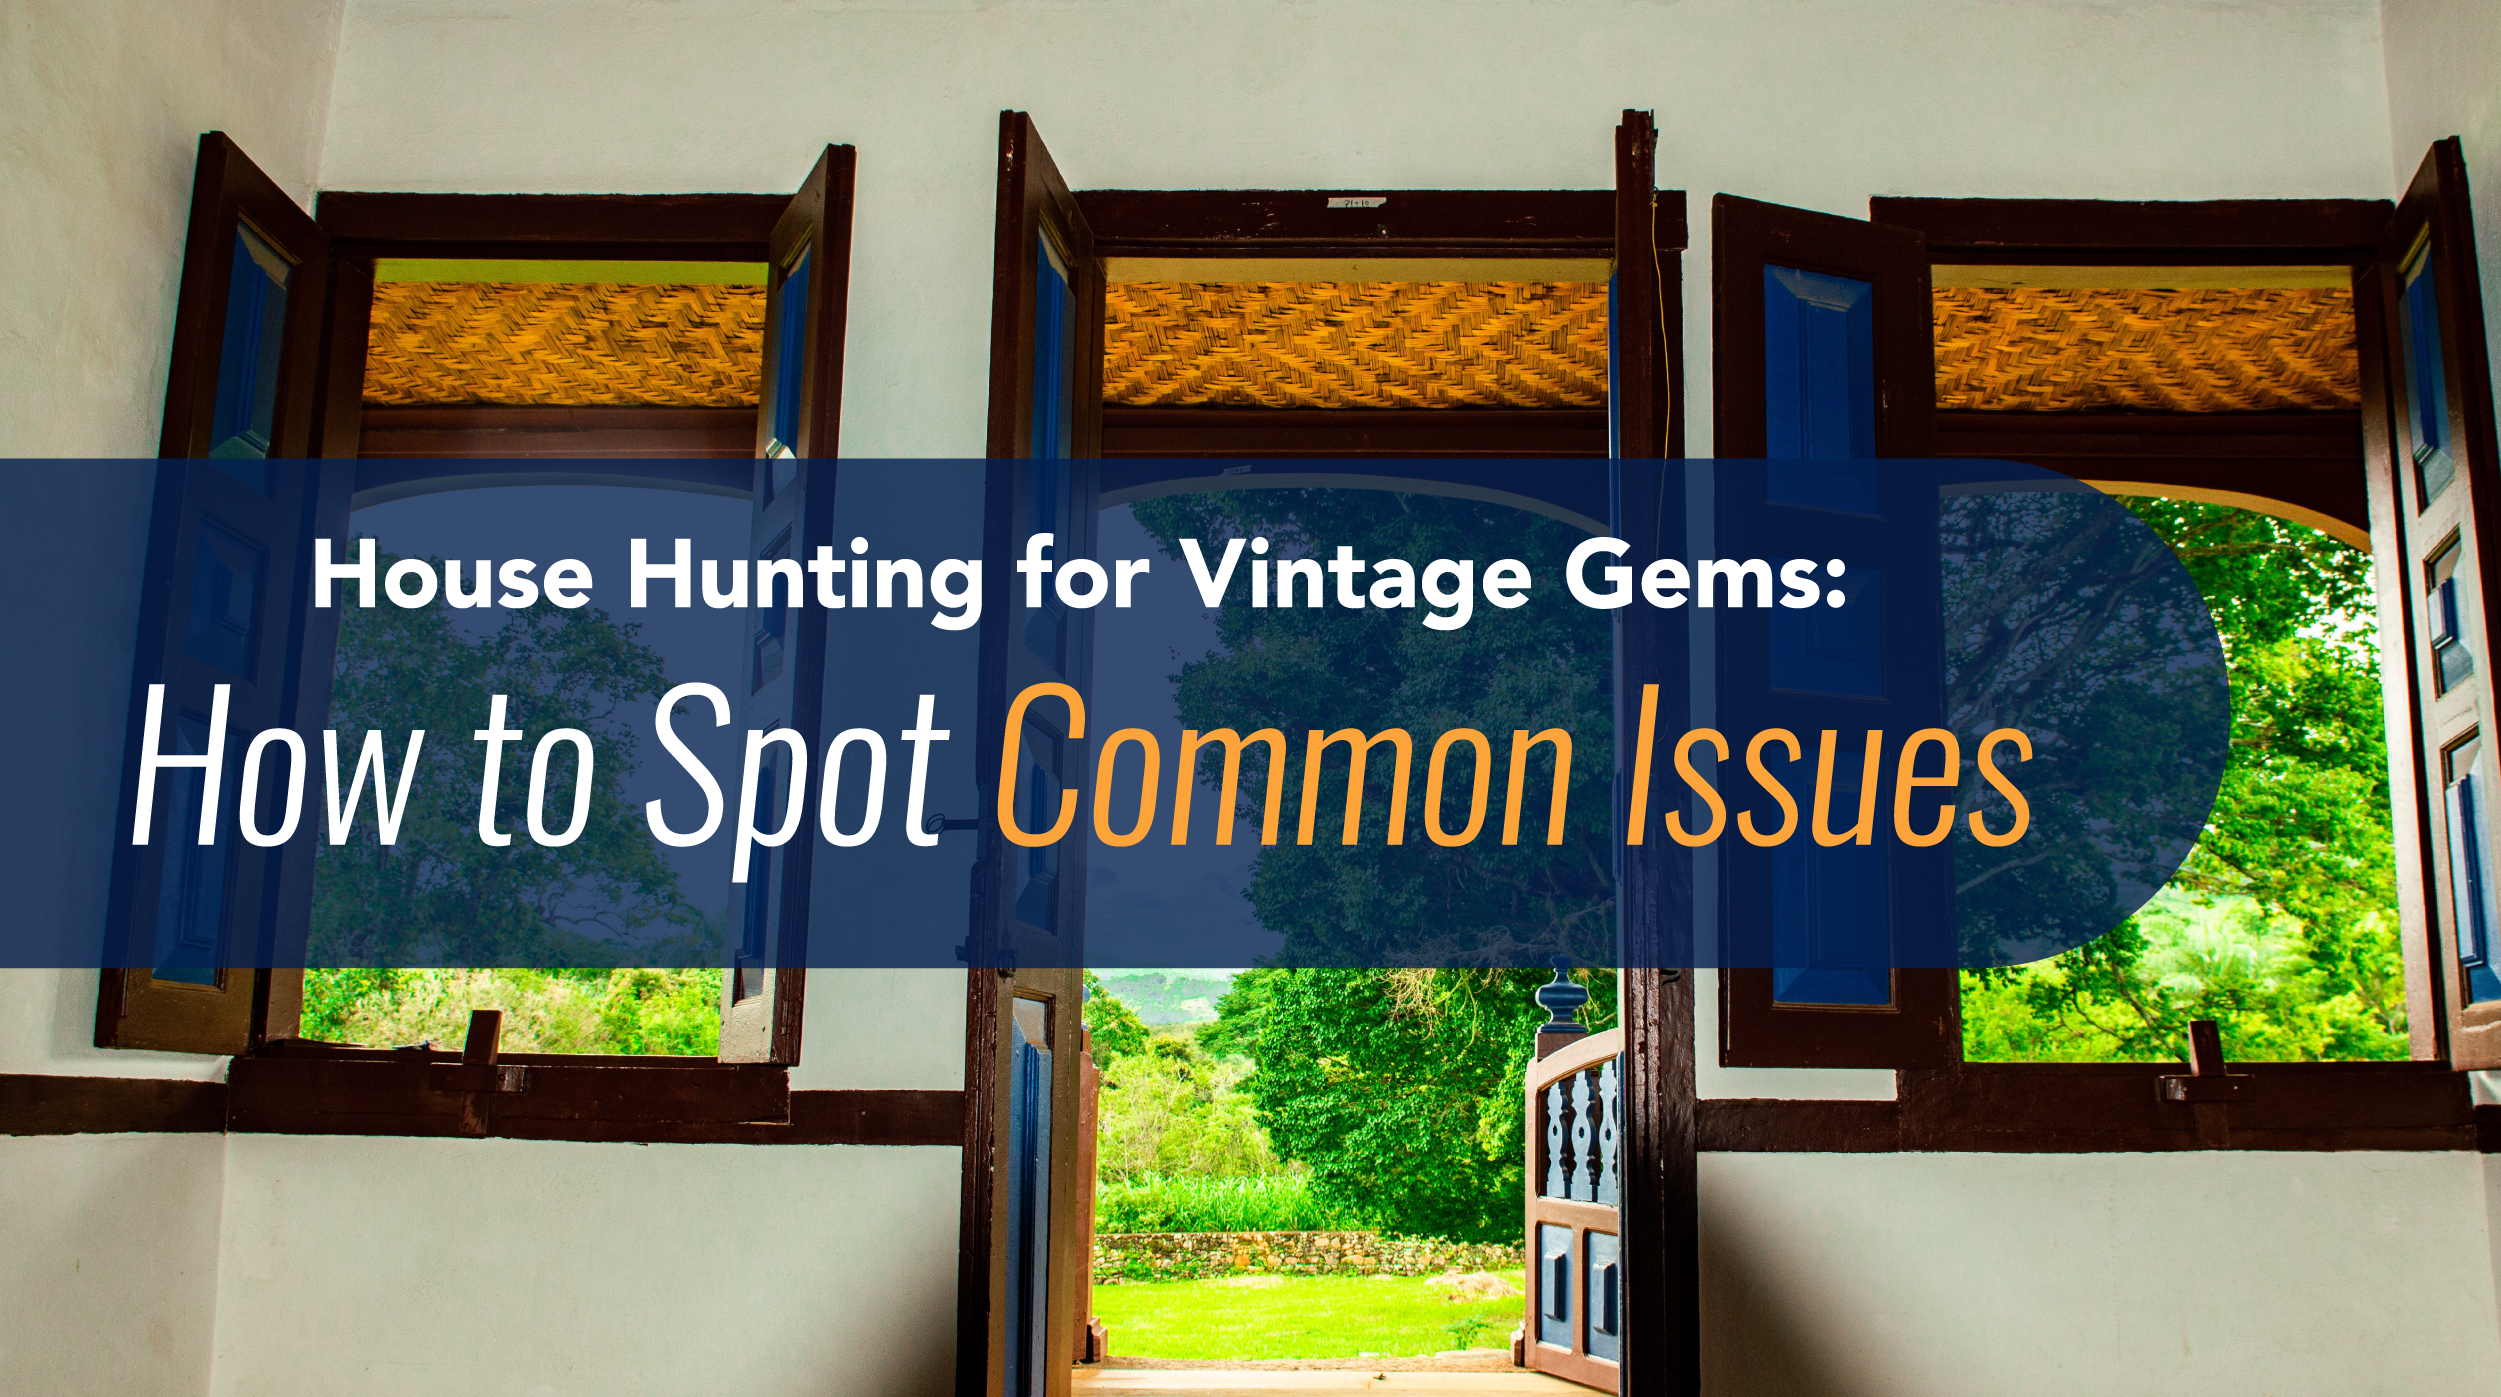 House Hunting for Vintage Gems - How to Spot Common Issues